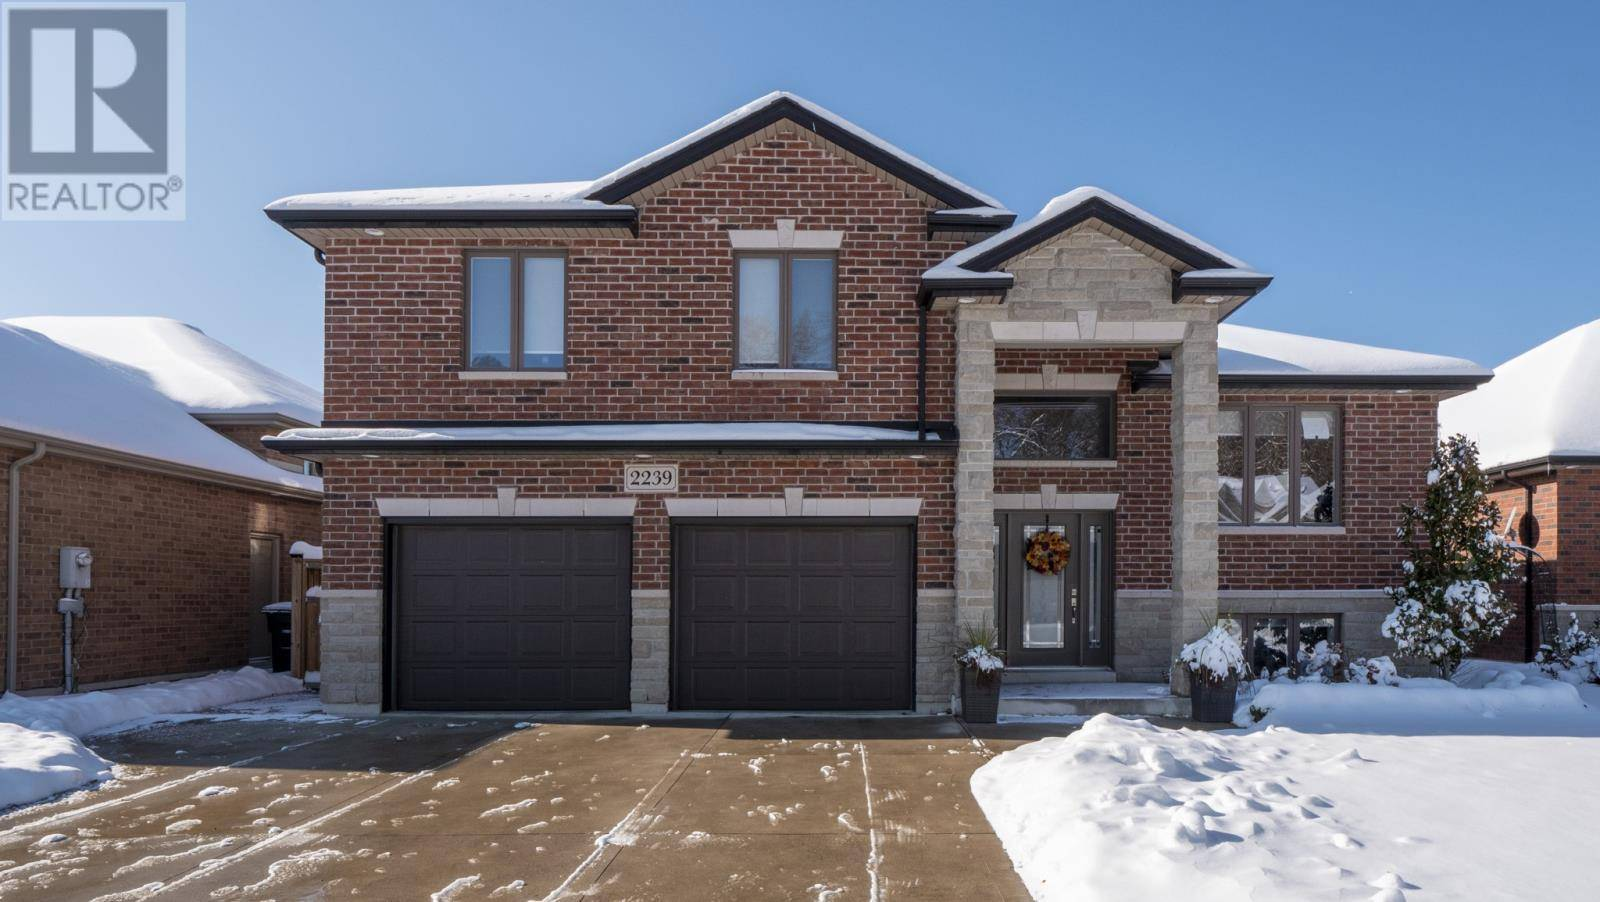 House for sale at 2239 Roxborough Blvd Windsor Ontario - MLS: 19028348